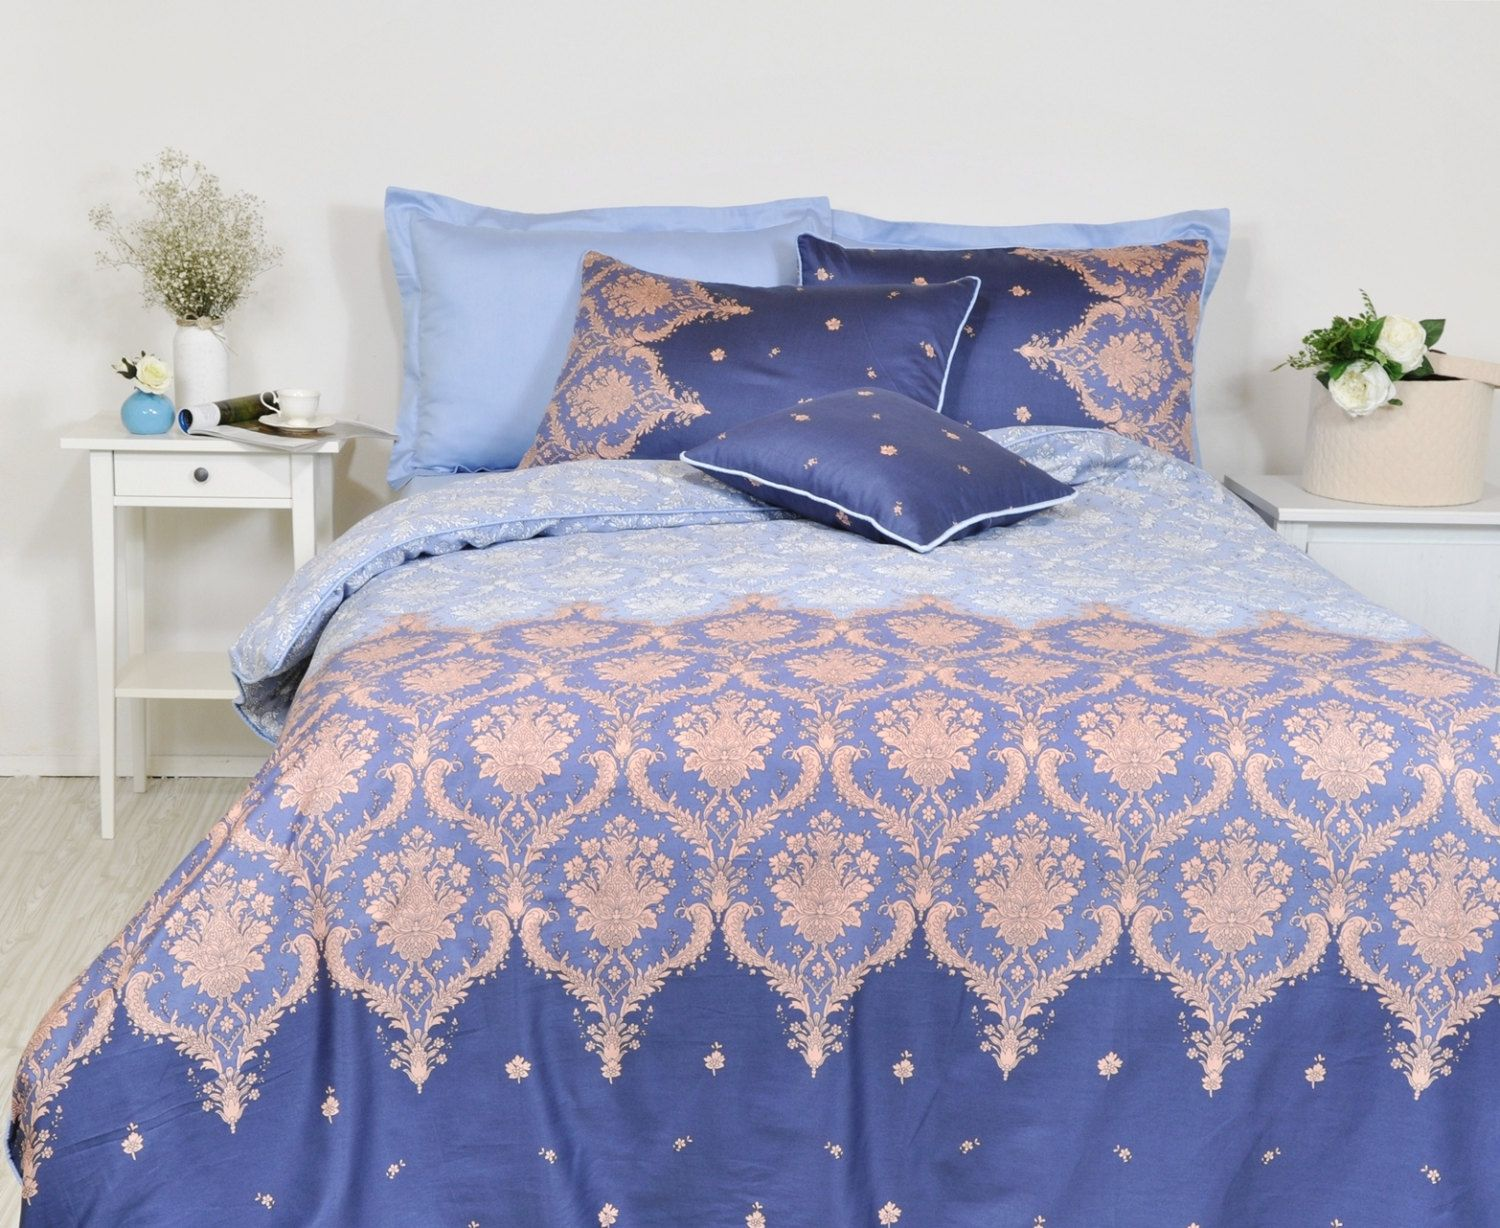 Damask bedding twin - Damask Duvet Cover Set In Navy Baby Blue For Full Queen King Size Damask Print Pure Cotton Sateen Fabric Moroccan Style Boho Bedding